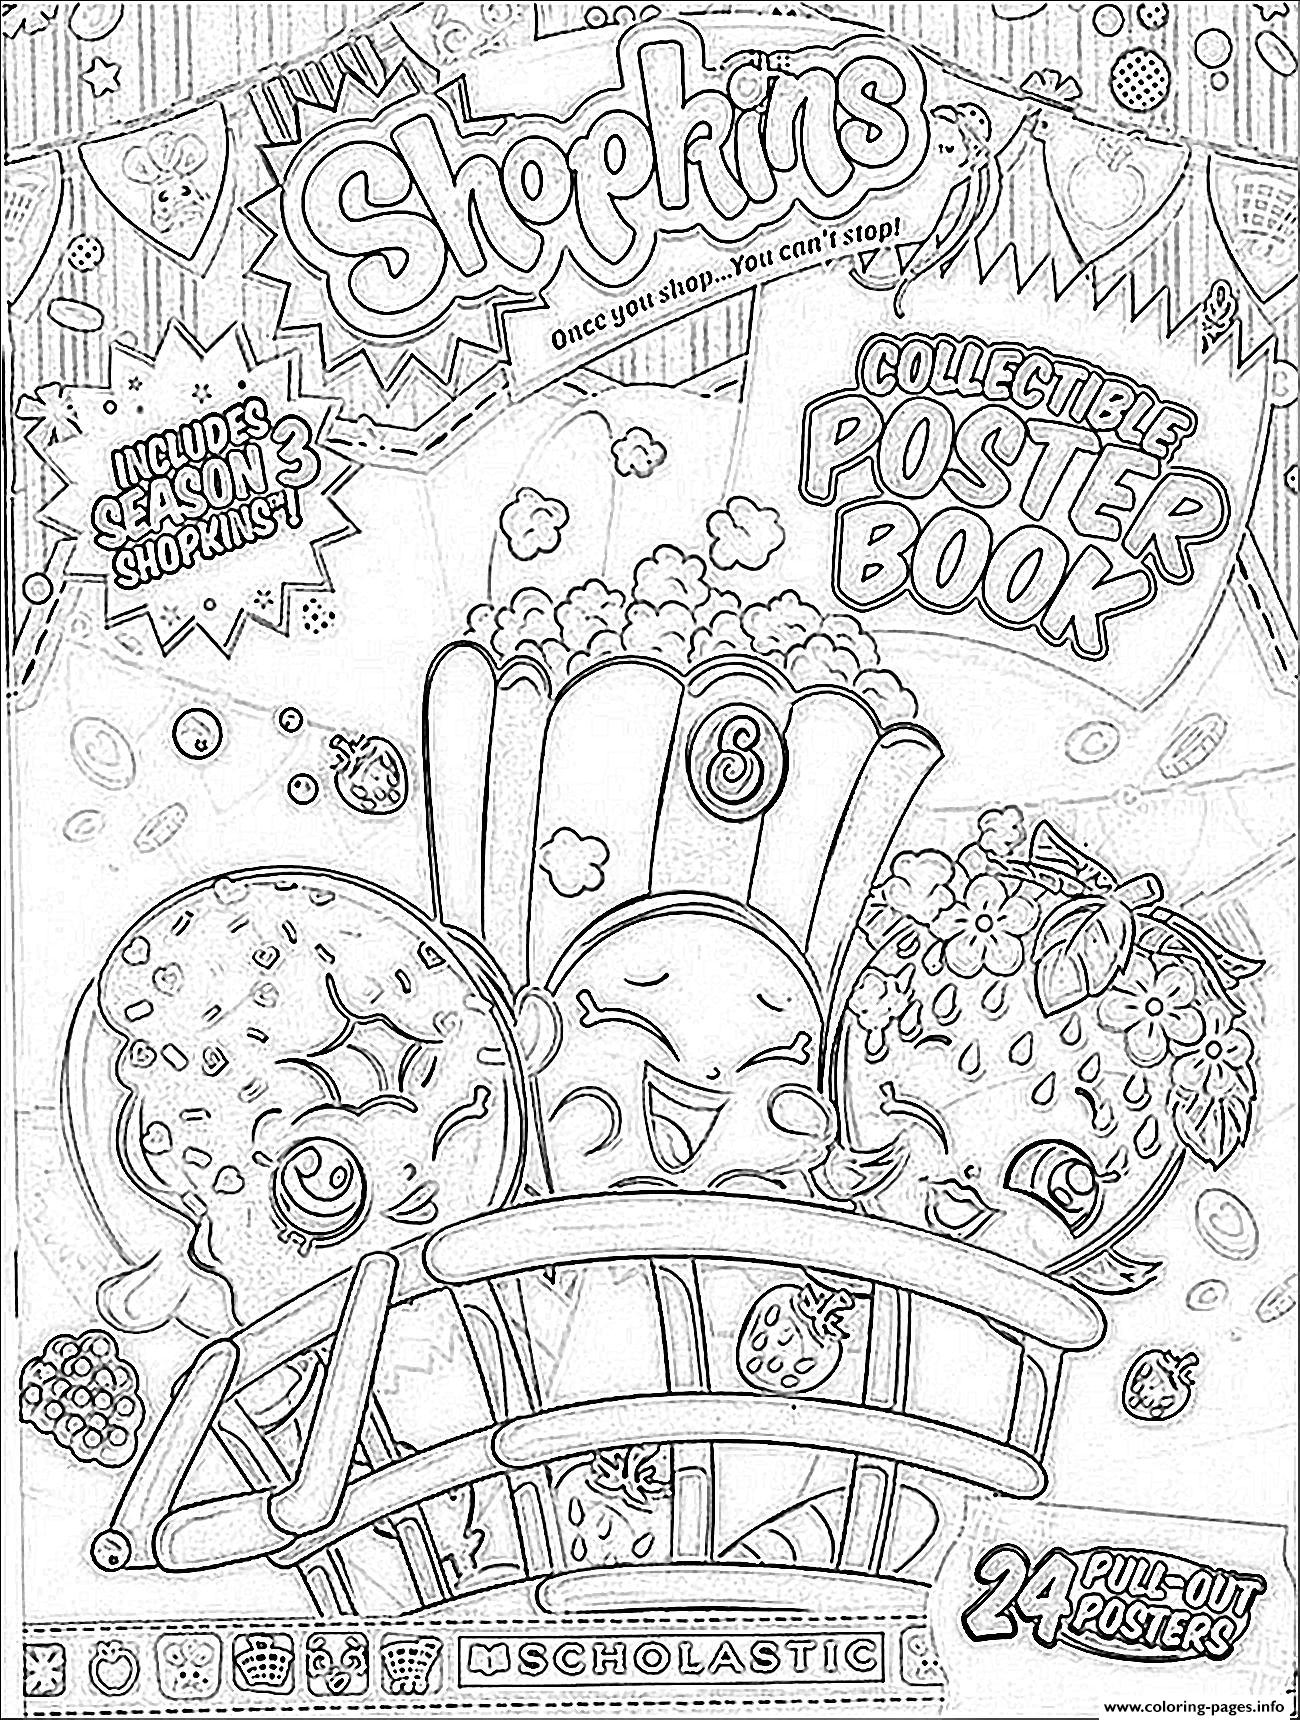 Shopkins Season 3 Book Coloring Pages Print Download 564 Prints